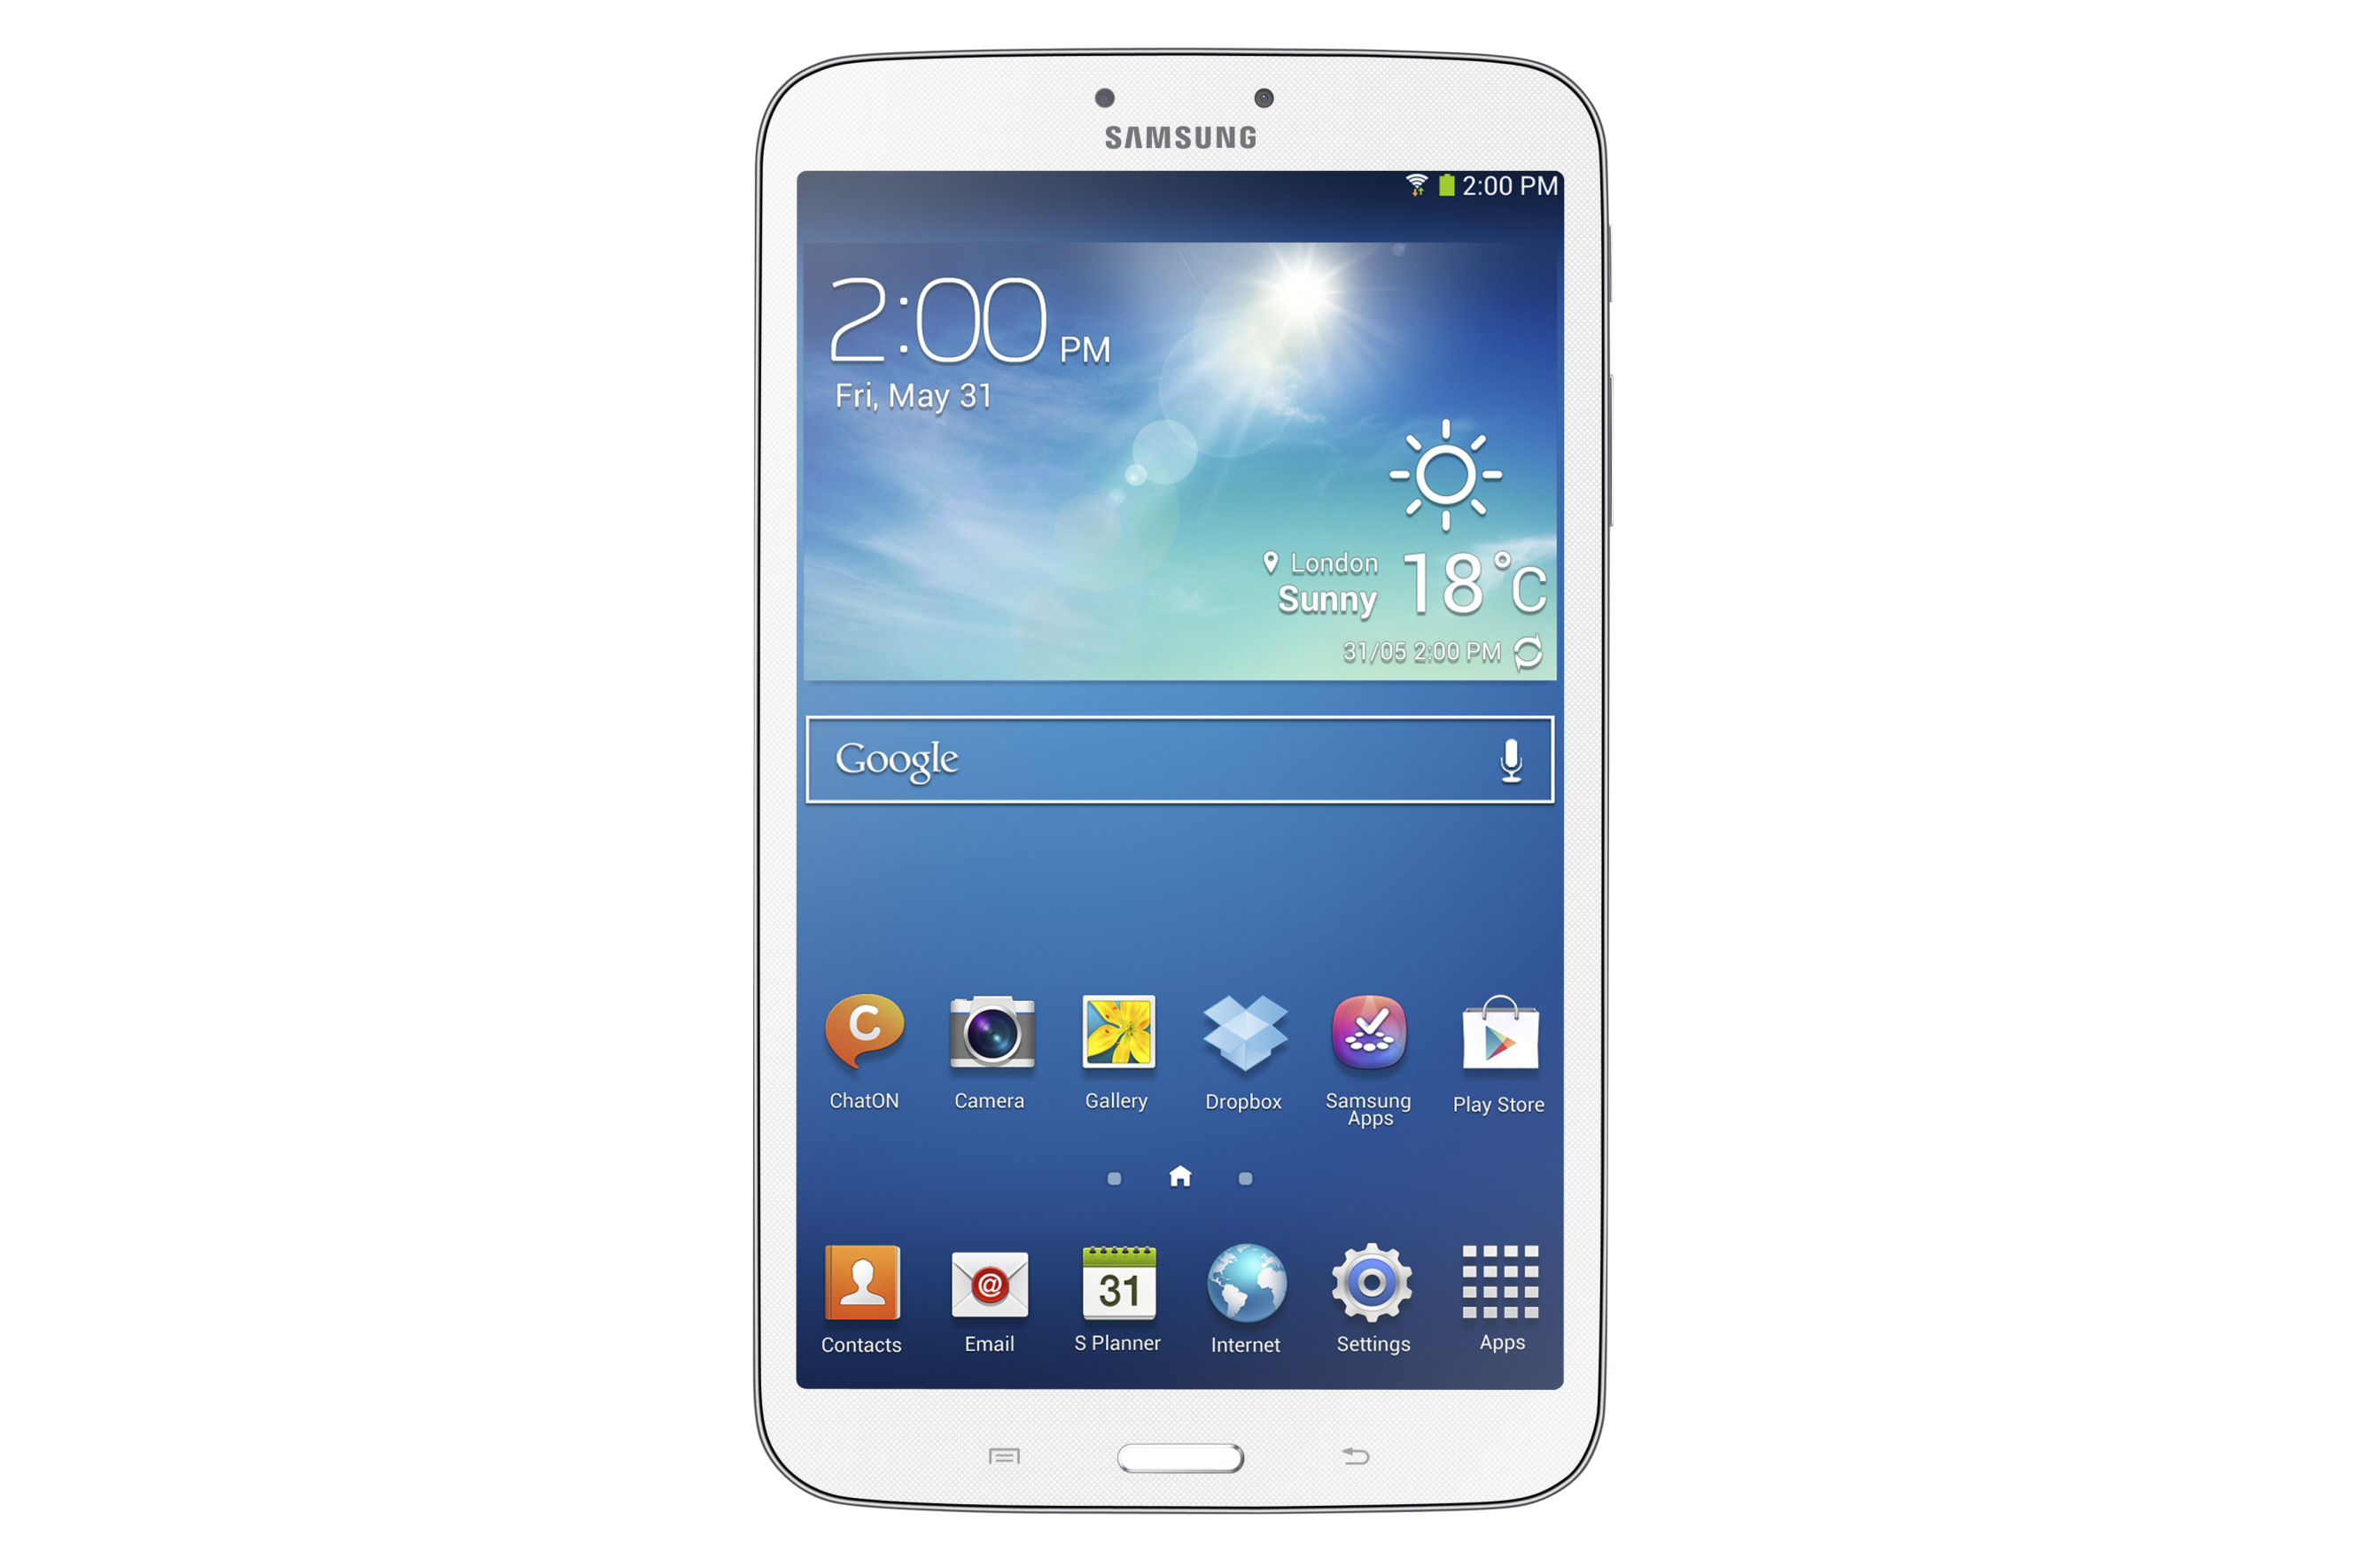 Samsung unveils Galaxy Tab 3 series, out in Singapore in Q3 2013